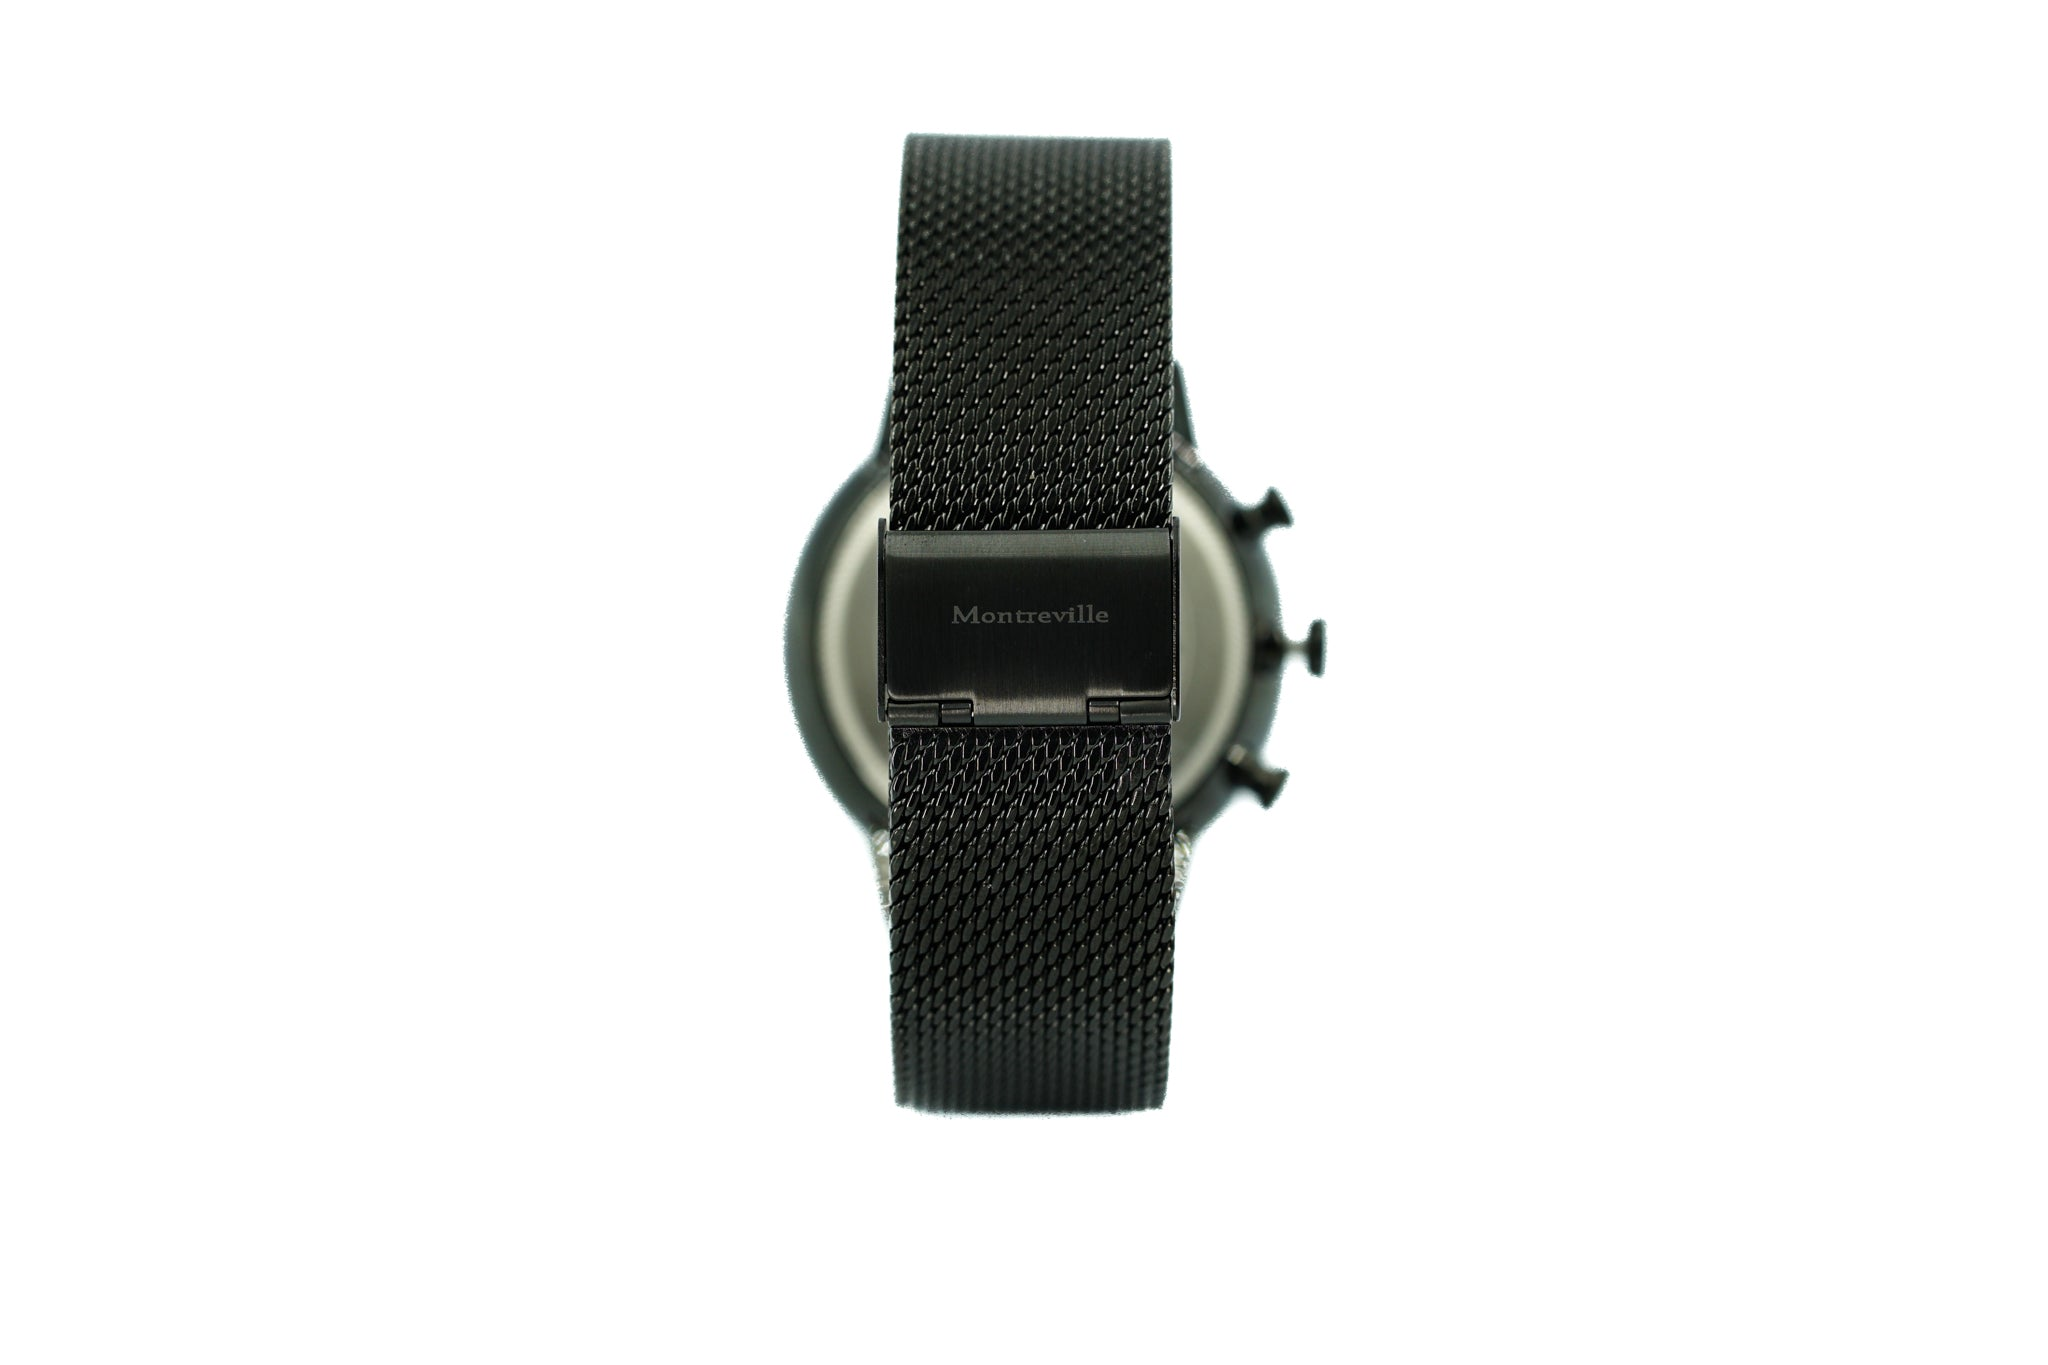 Black watch called Baku from the brand Montreville, seen from the back. This is an image of the watch with a white background. The timepiece has a unique design with a mesh strap in black.